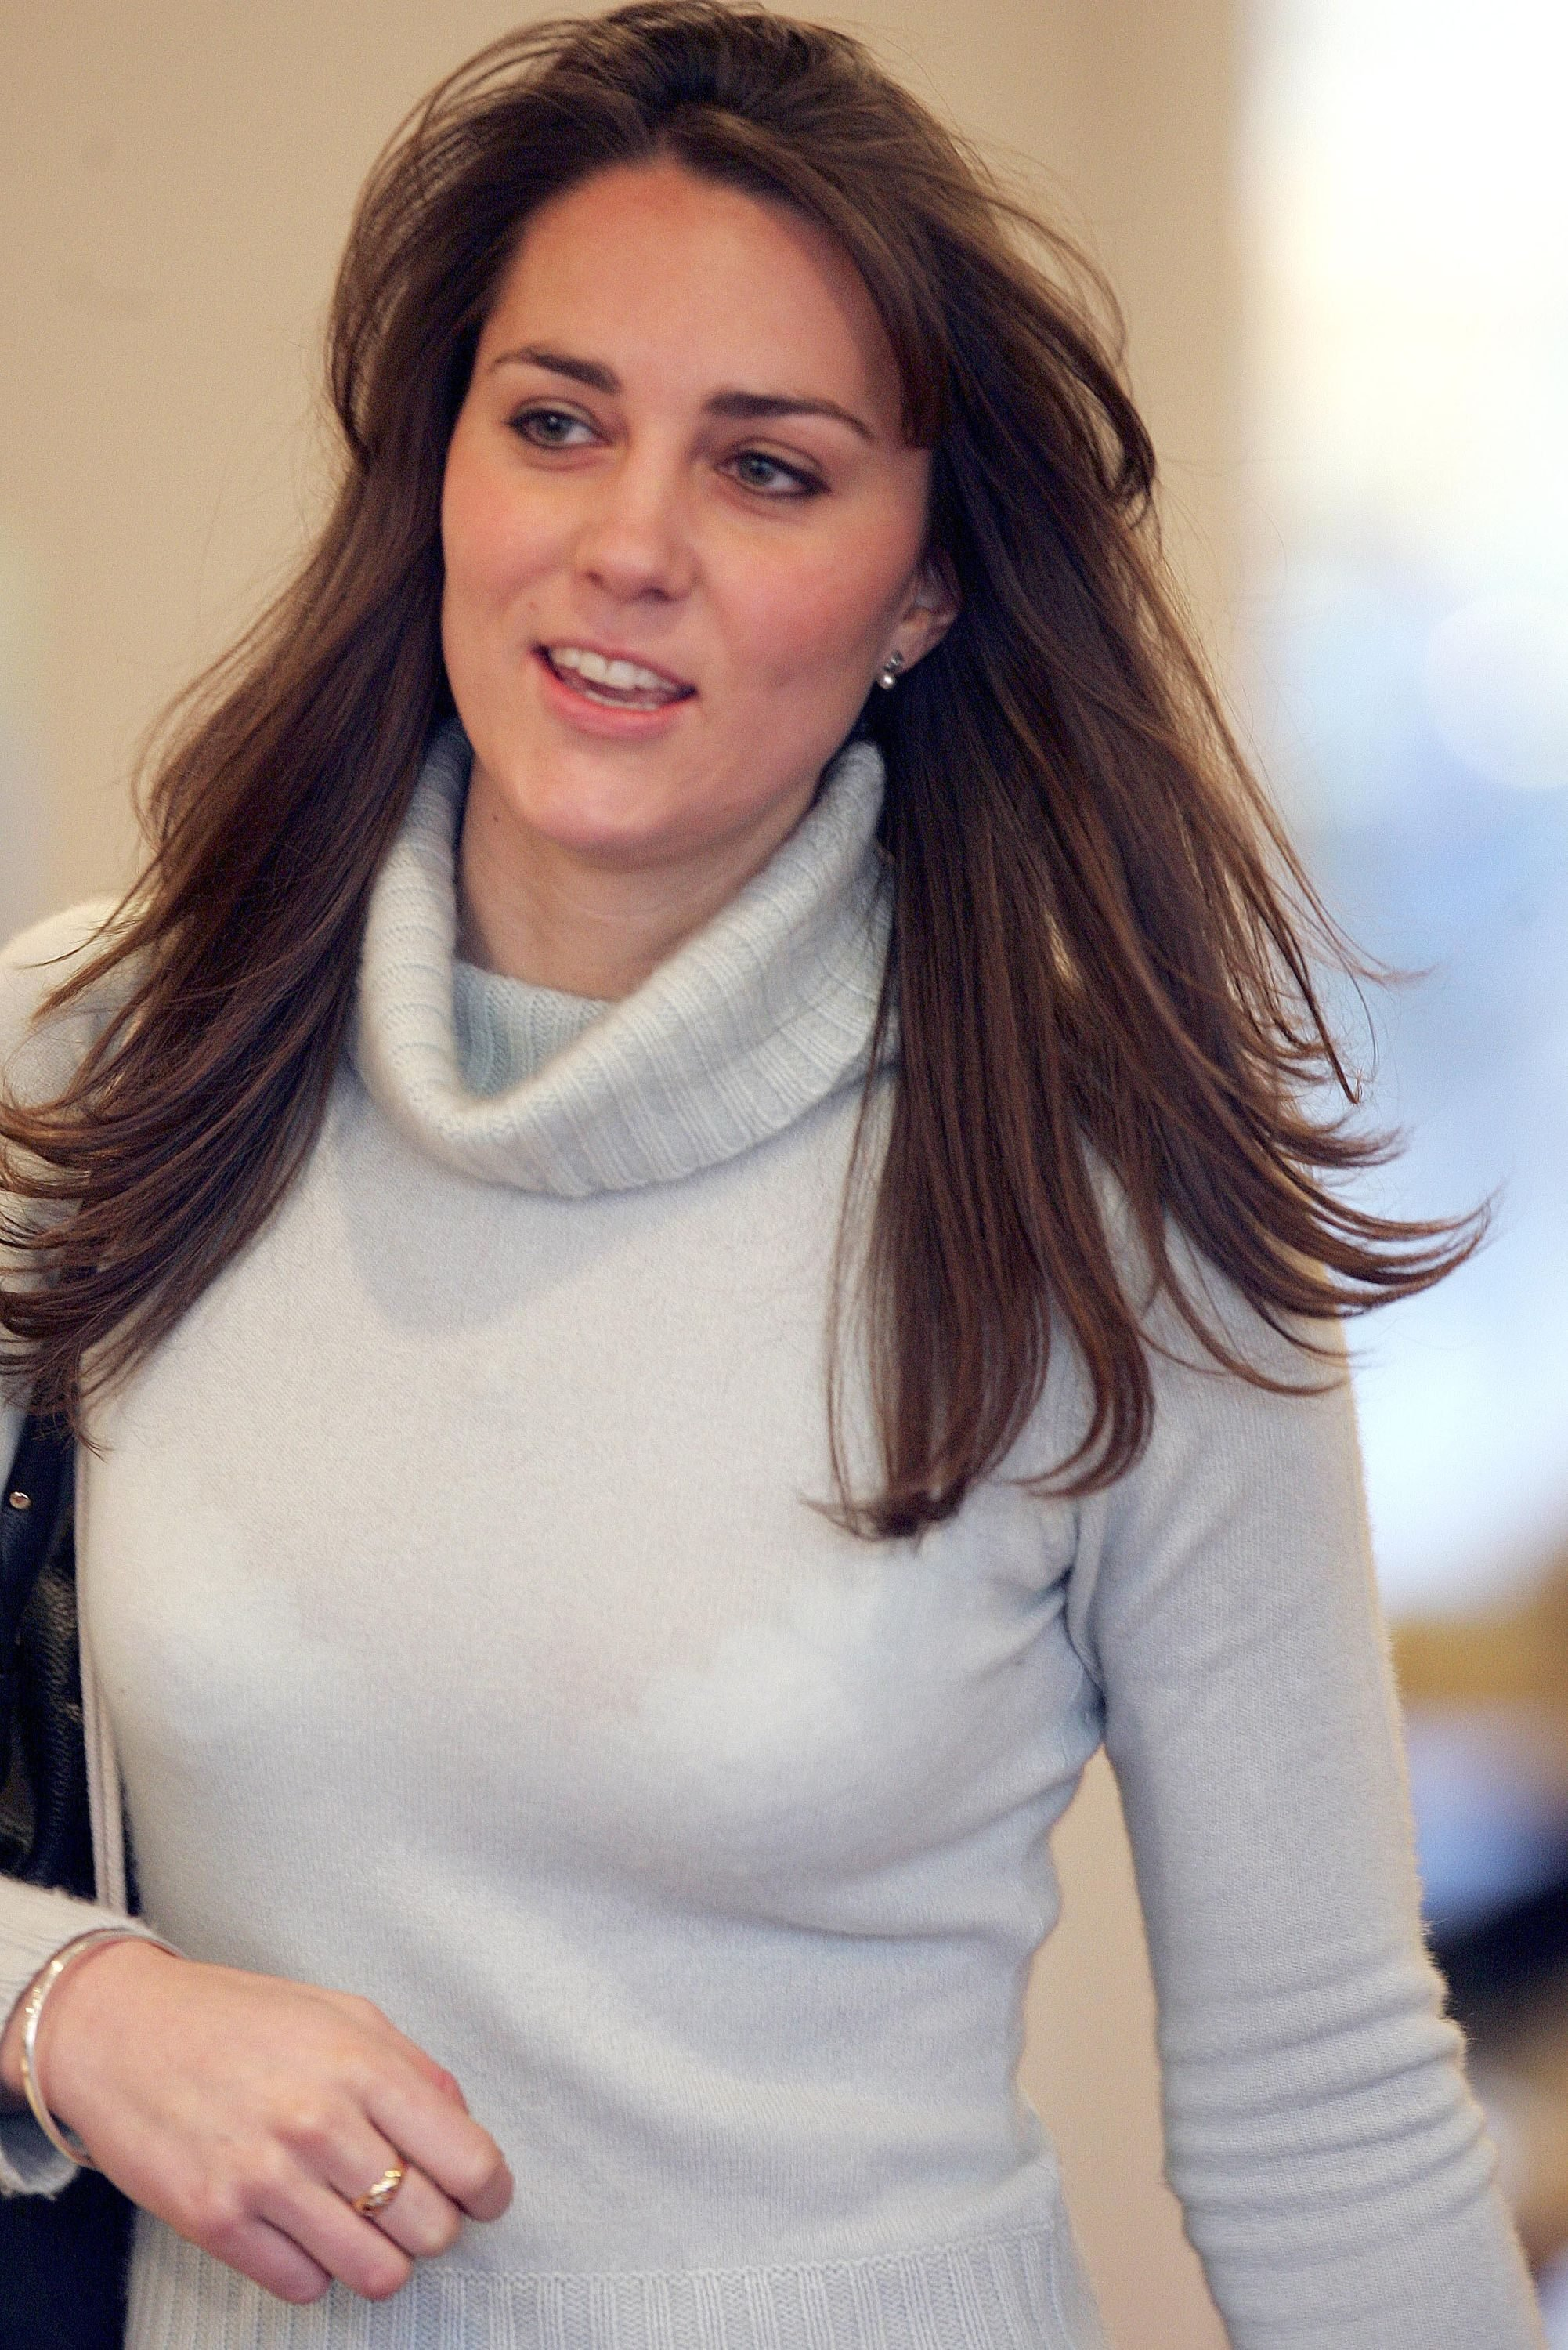 Breaking News - Kate Middleton Pregnant: Duchess of Cambridge Expecting with Husband Prince William, Palace Confirms - and It May Be Twins